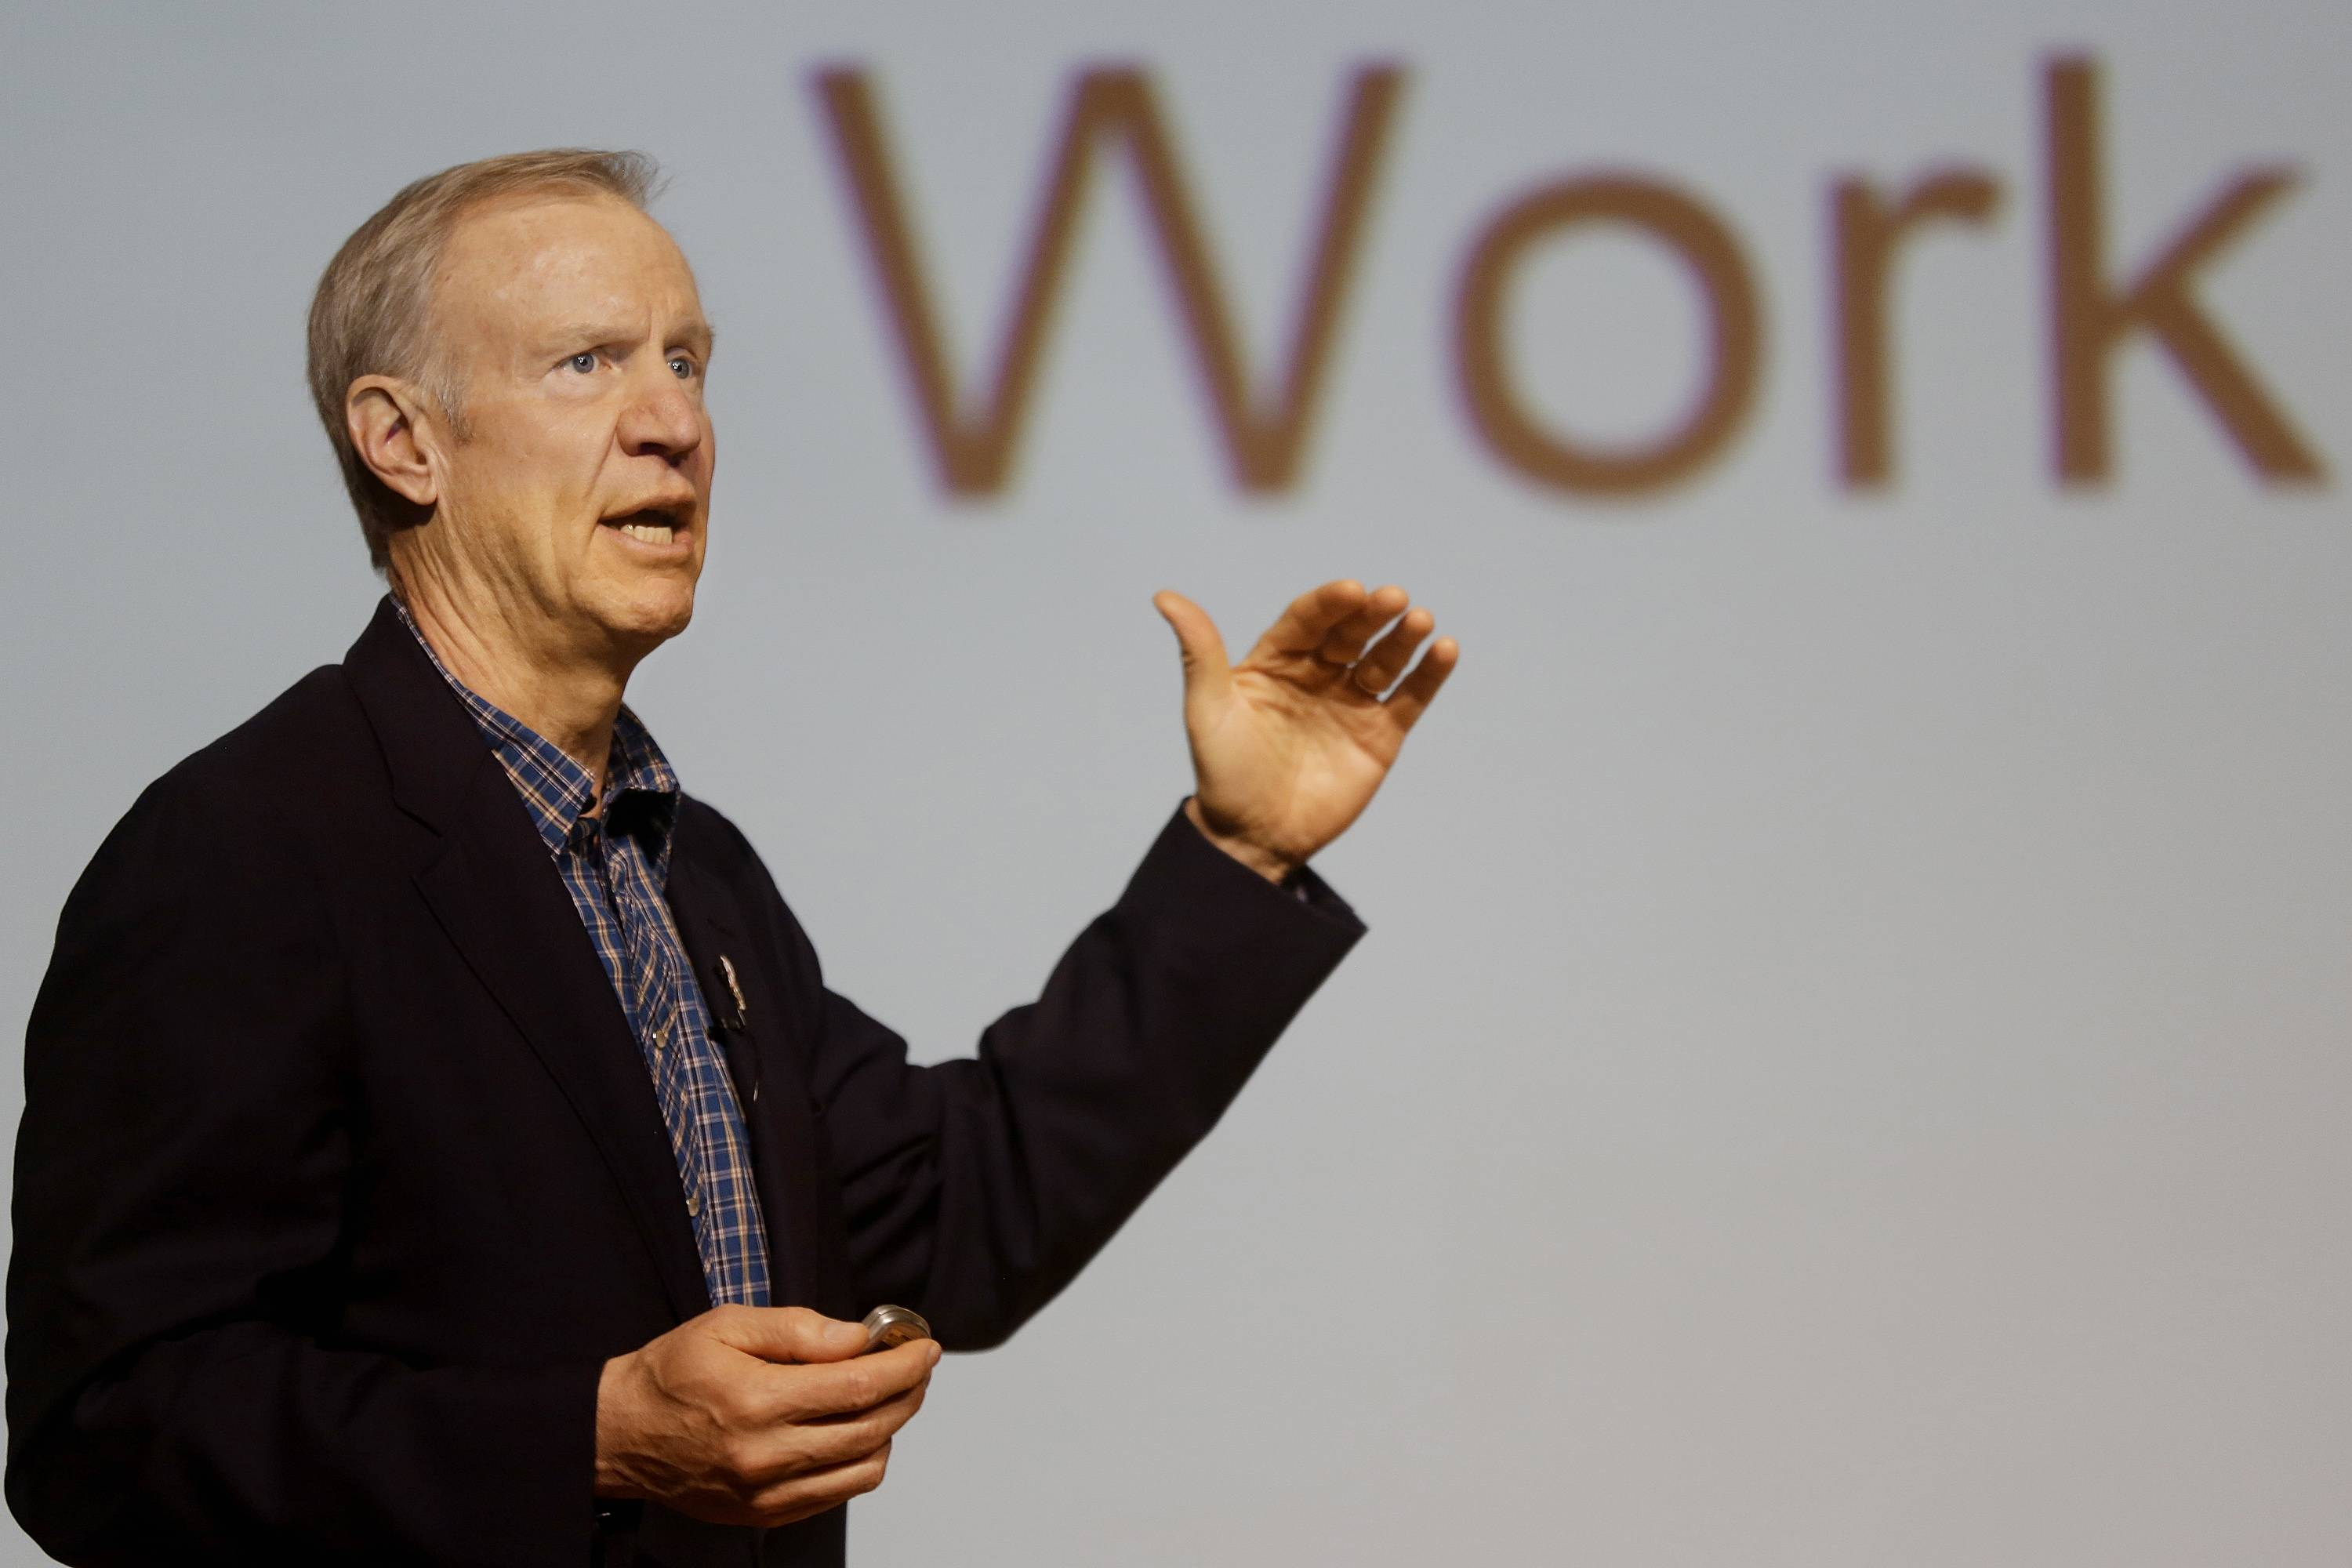 6 Things to watch in Rauner's State of the State speech